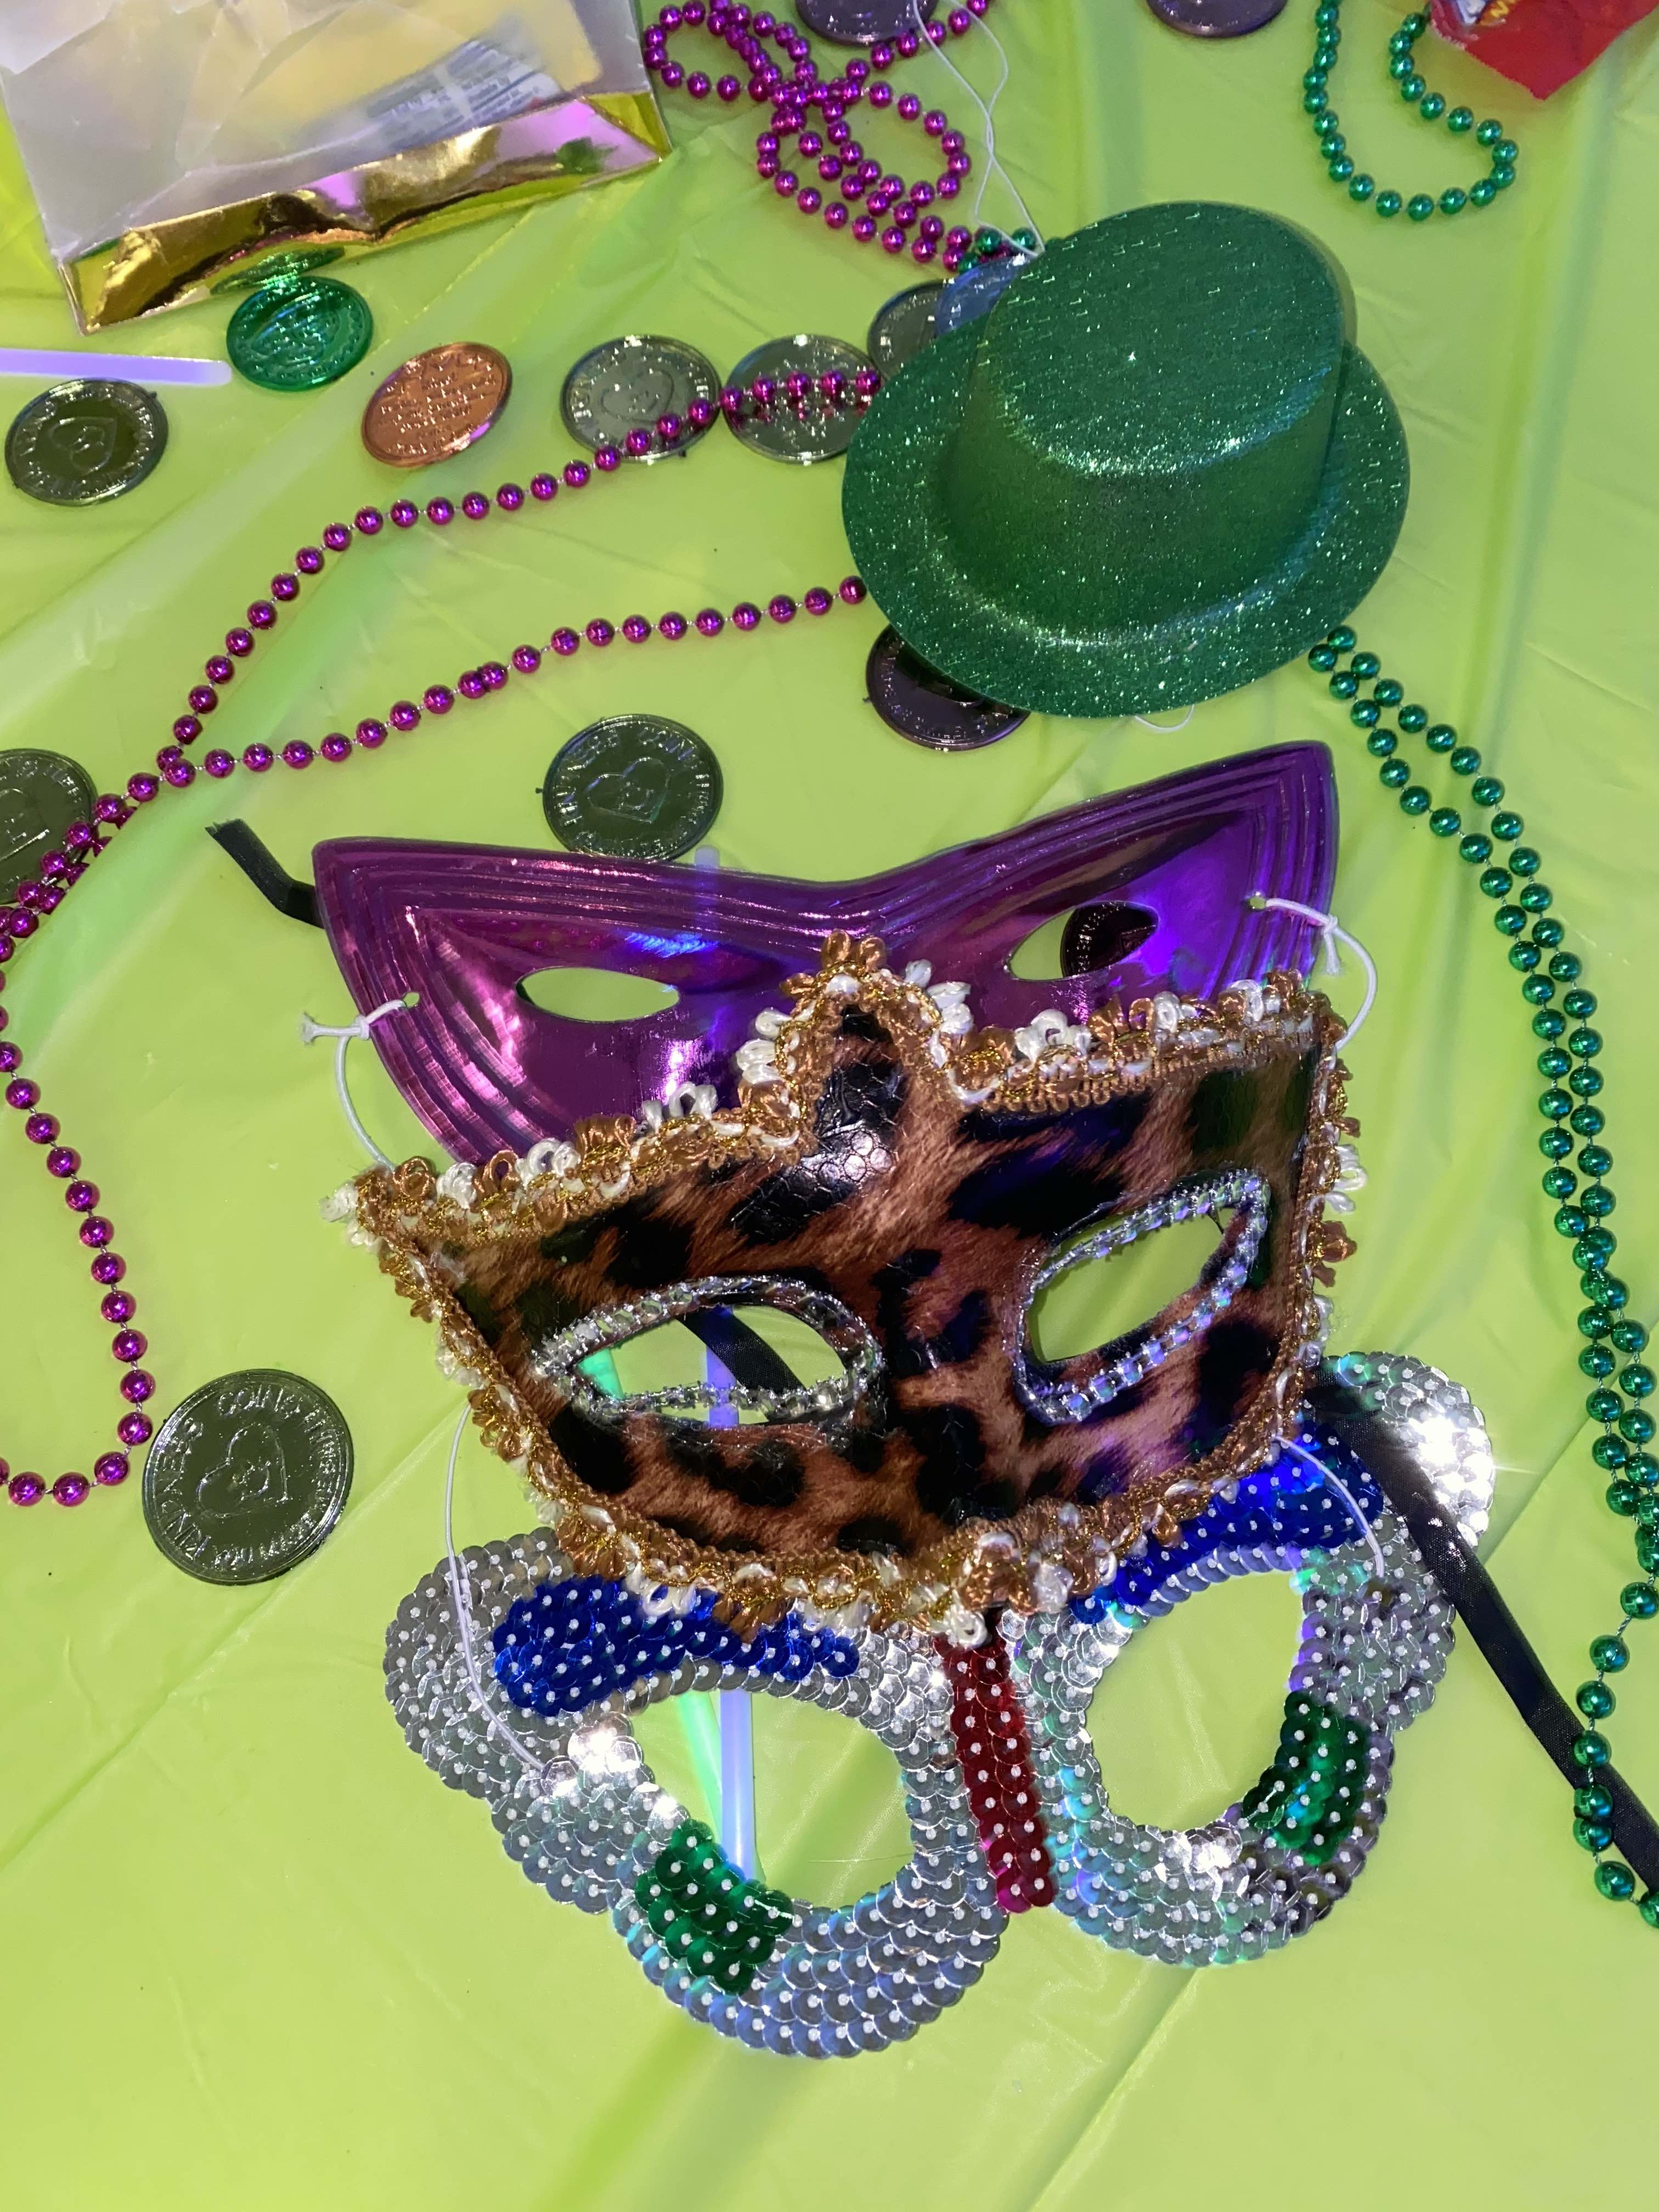 mardi gras masks, beads, coins, and a hat are strewn on a green table